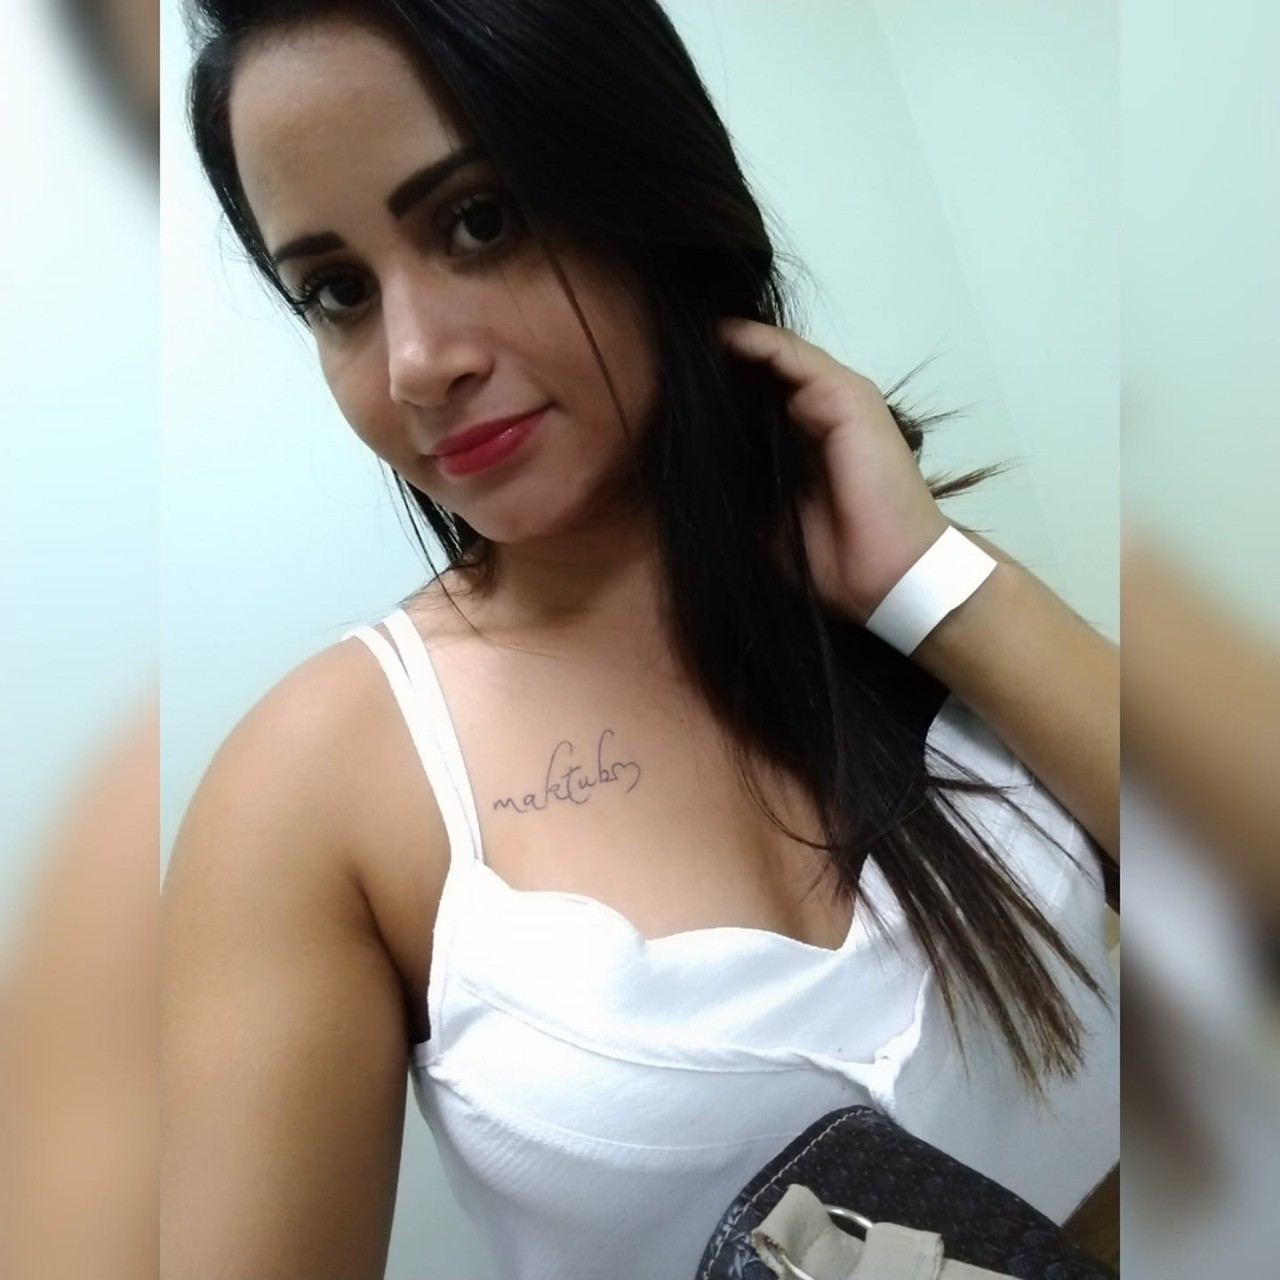 Esteticista é assassinada a facadas dentro de casa em Mato Grosso